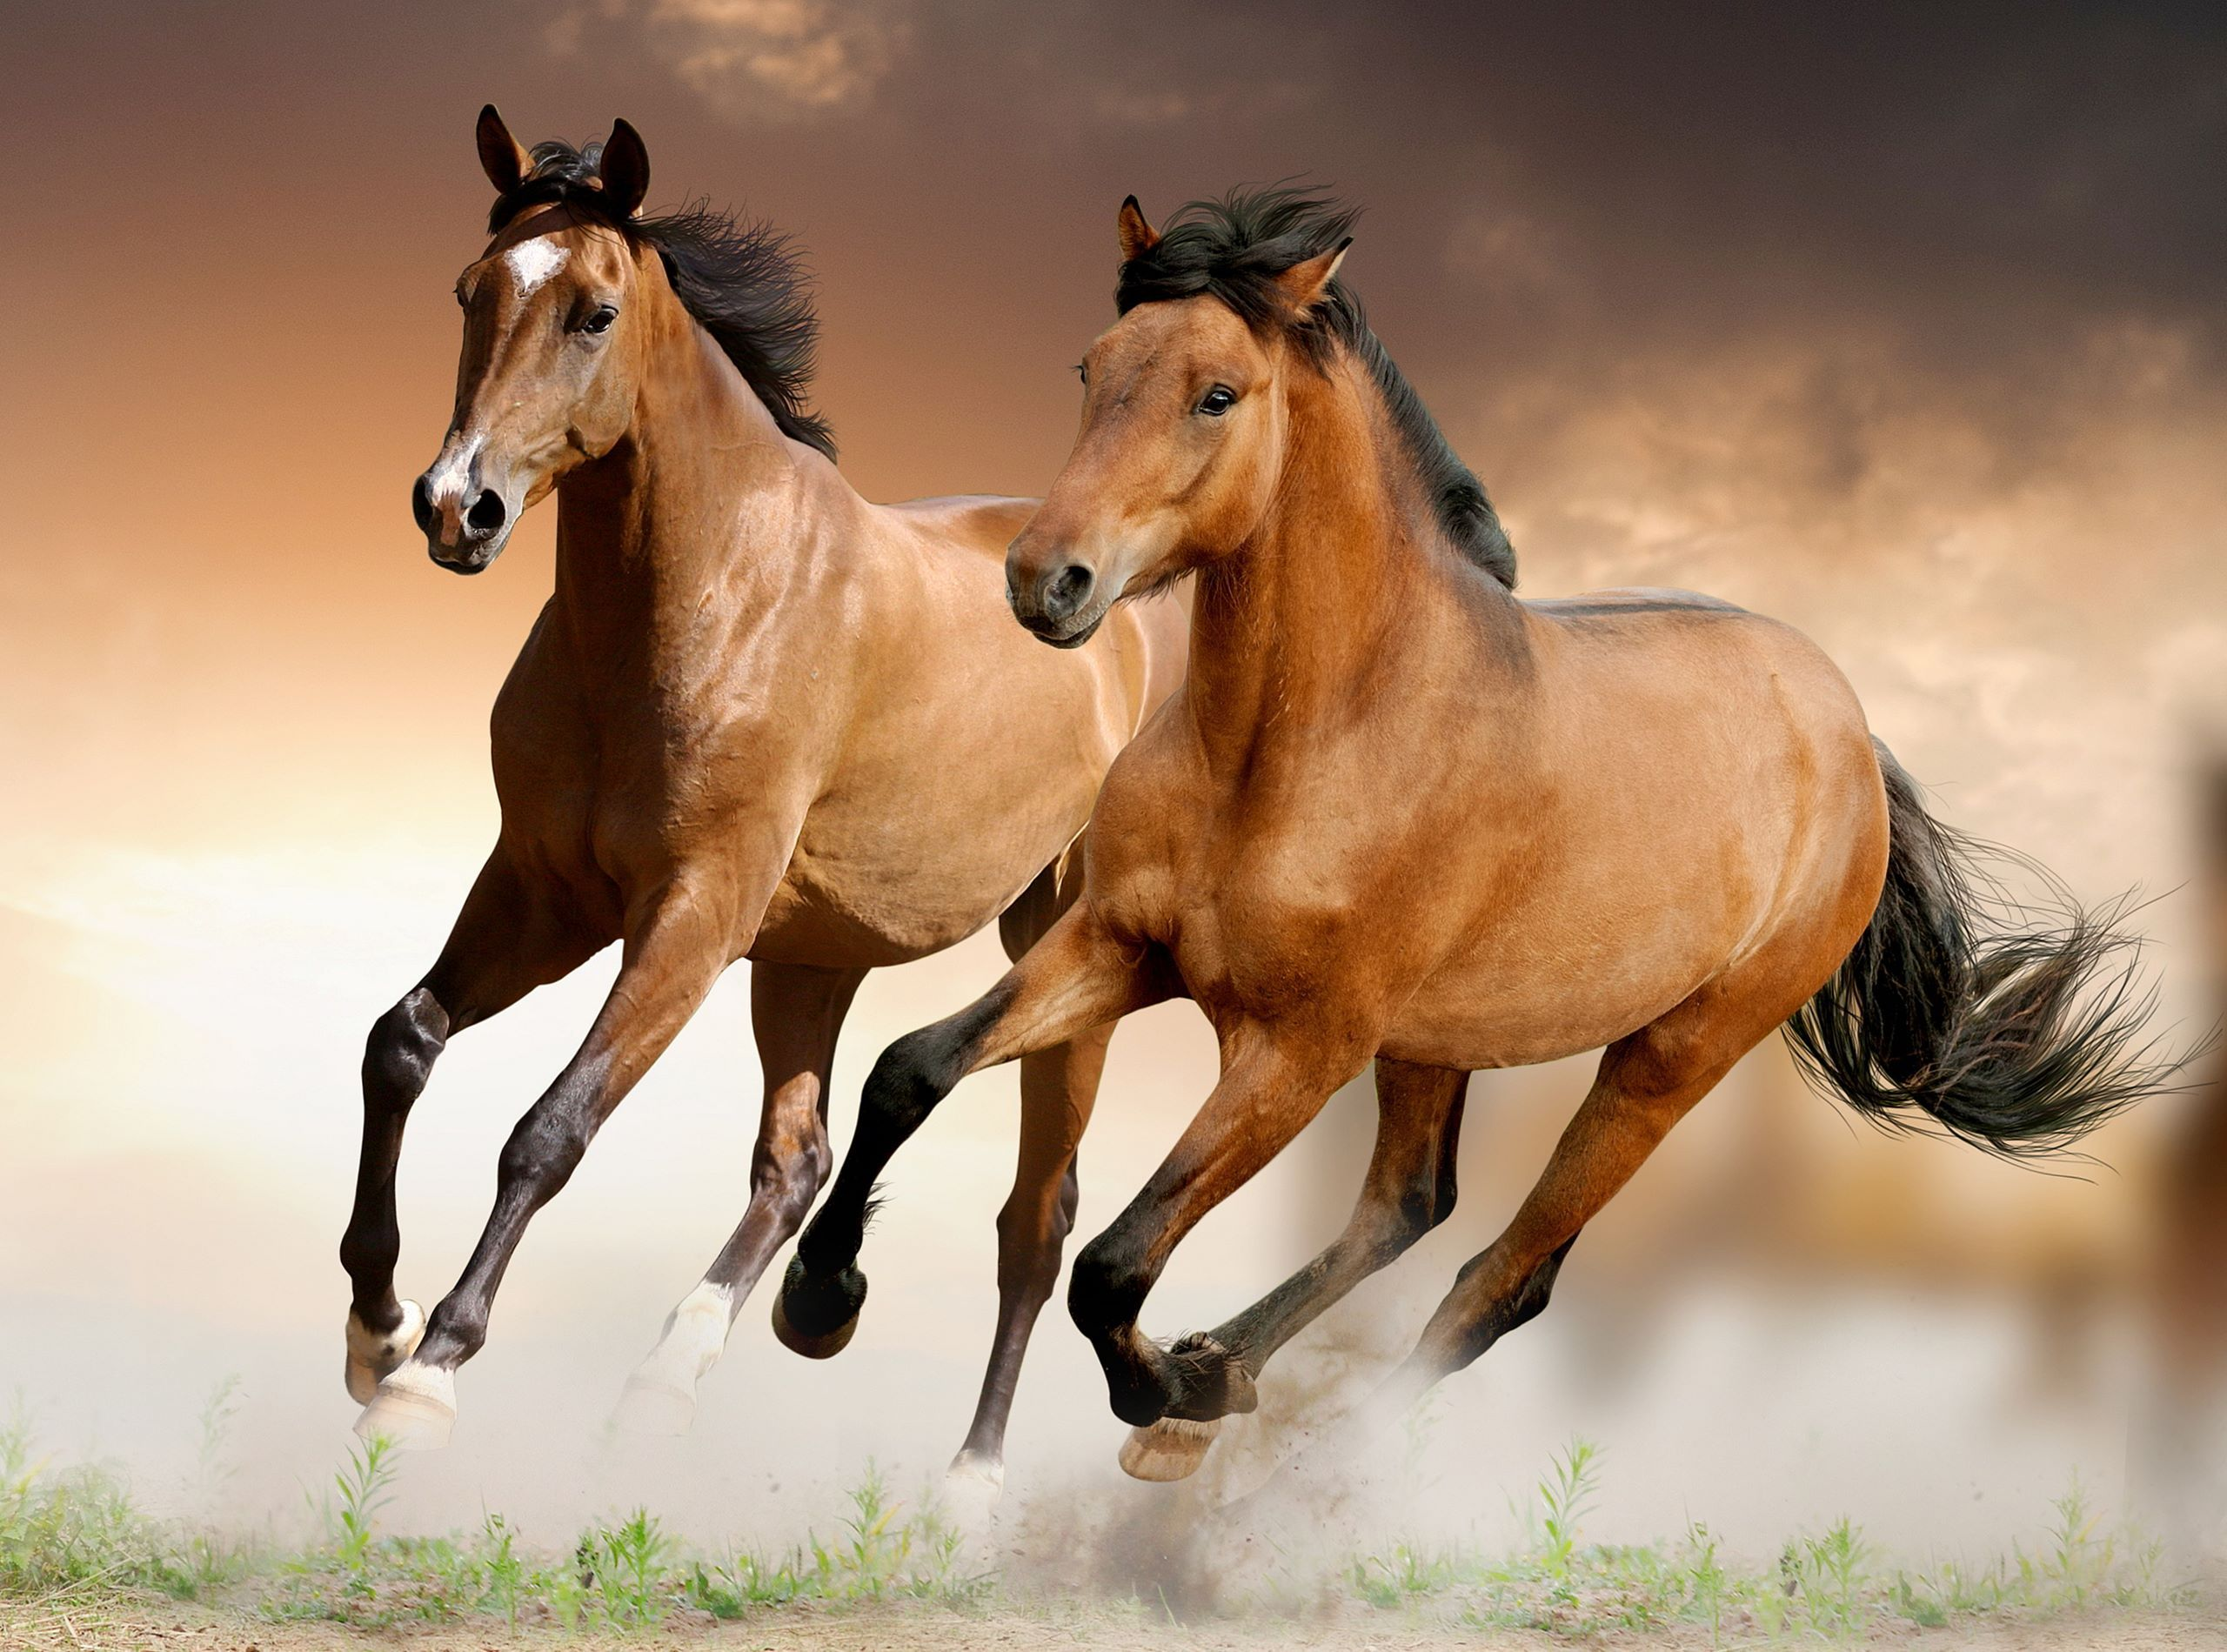 Download Wallpaper Horse Desert - cd89e689cf7b858d0edcea4712bafe1a  Graphic_494645.jpg